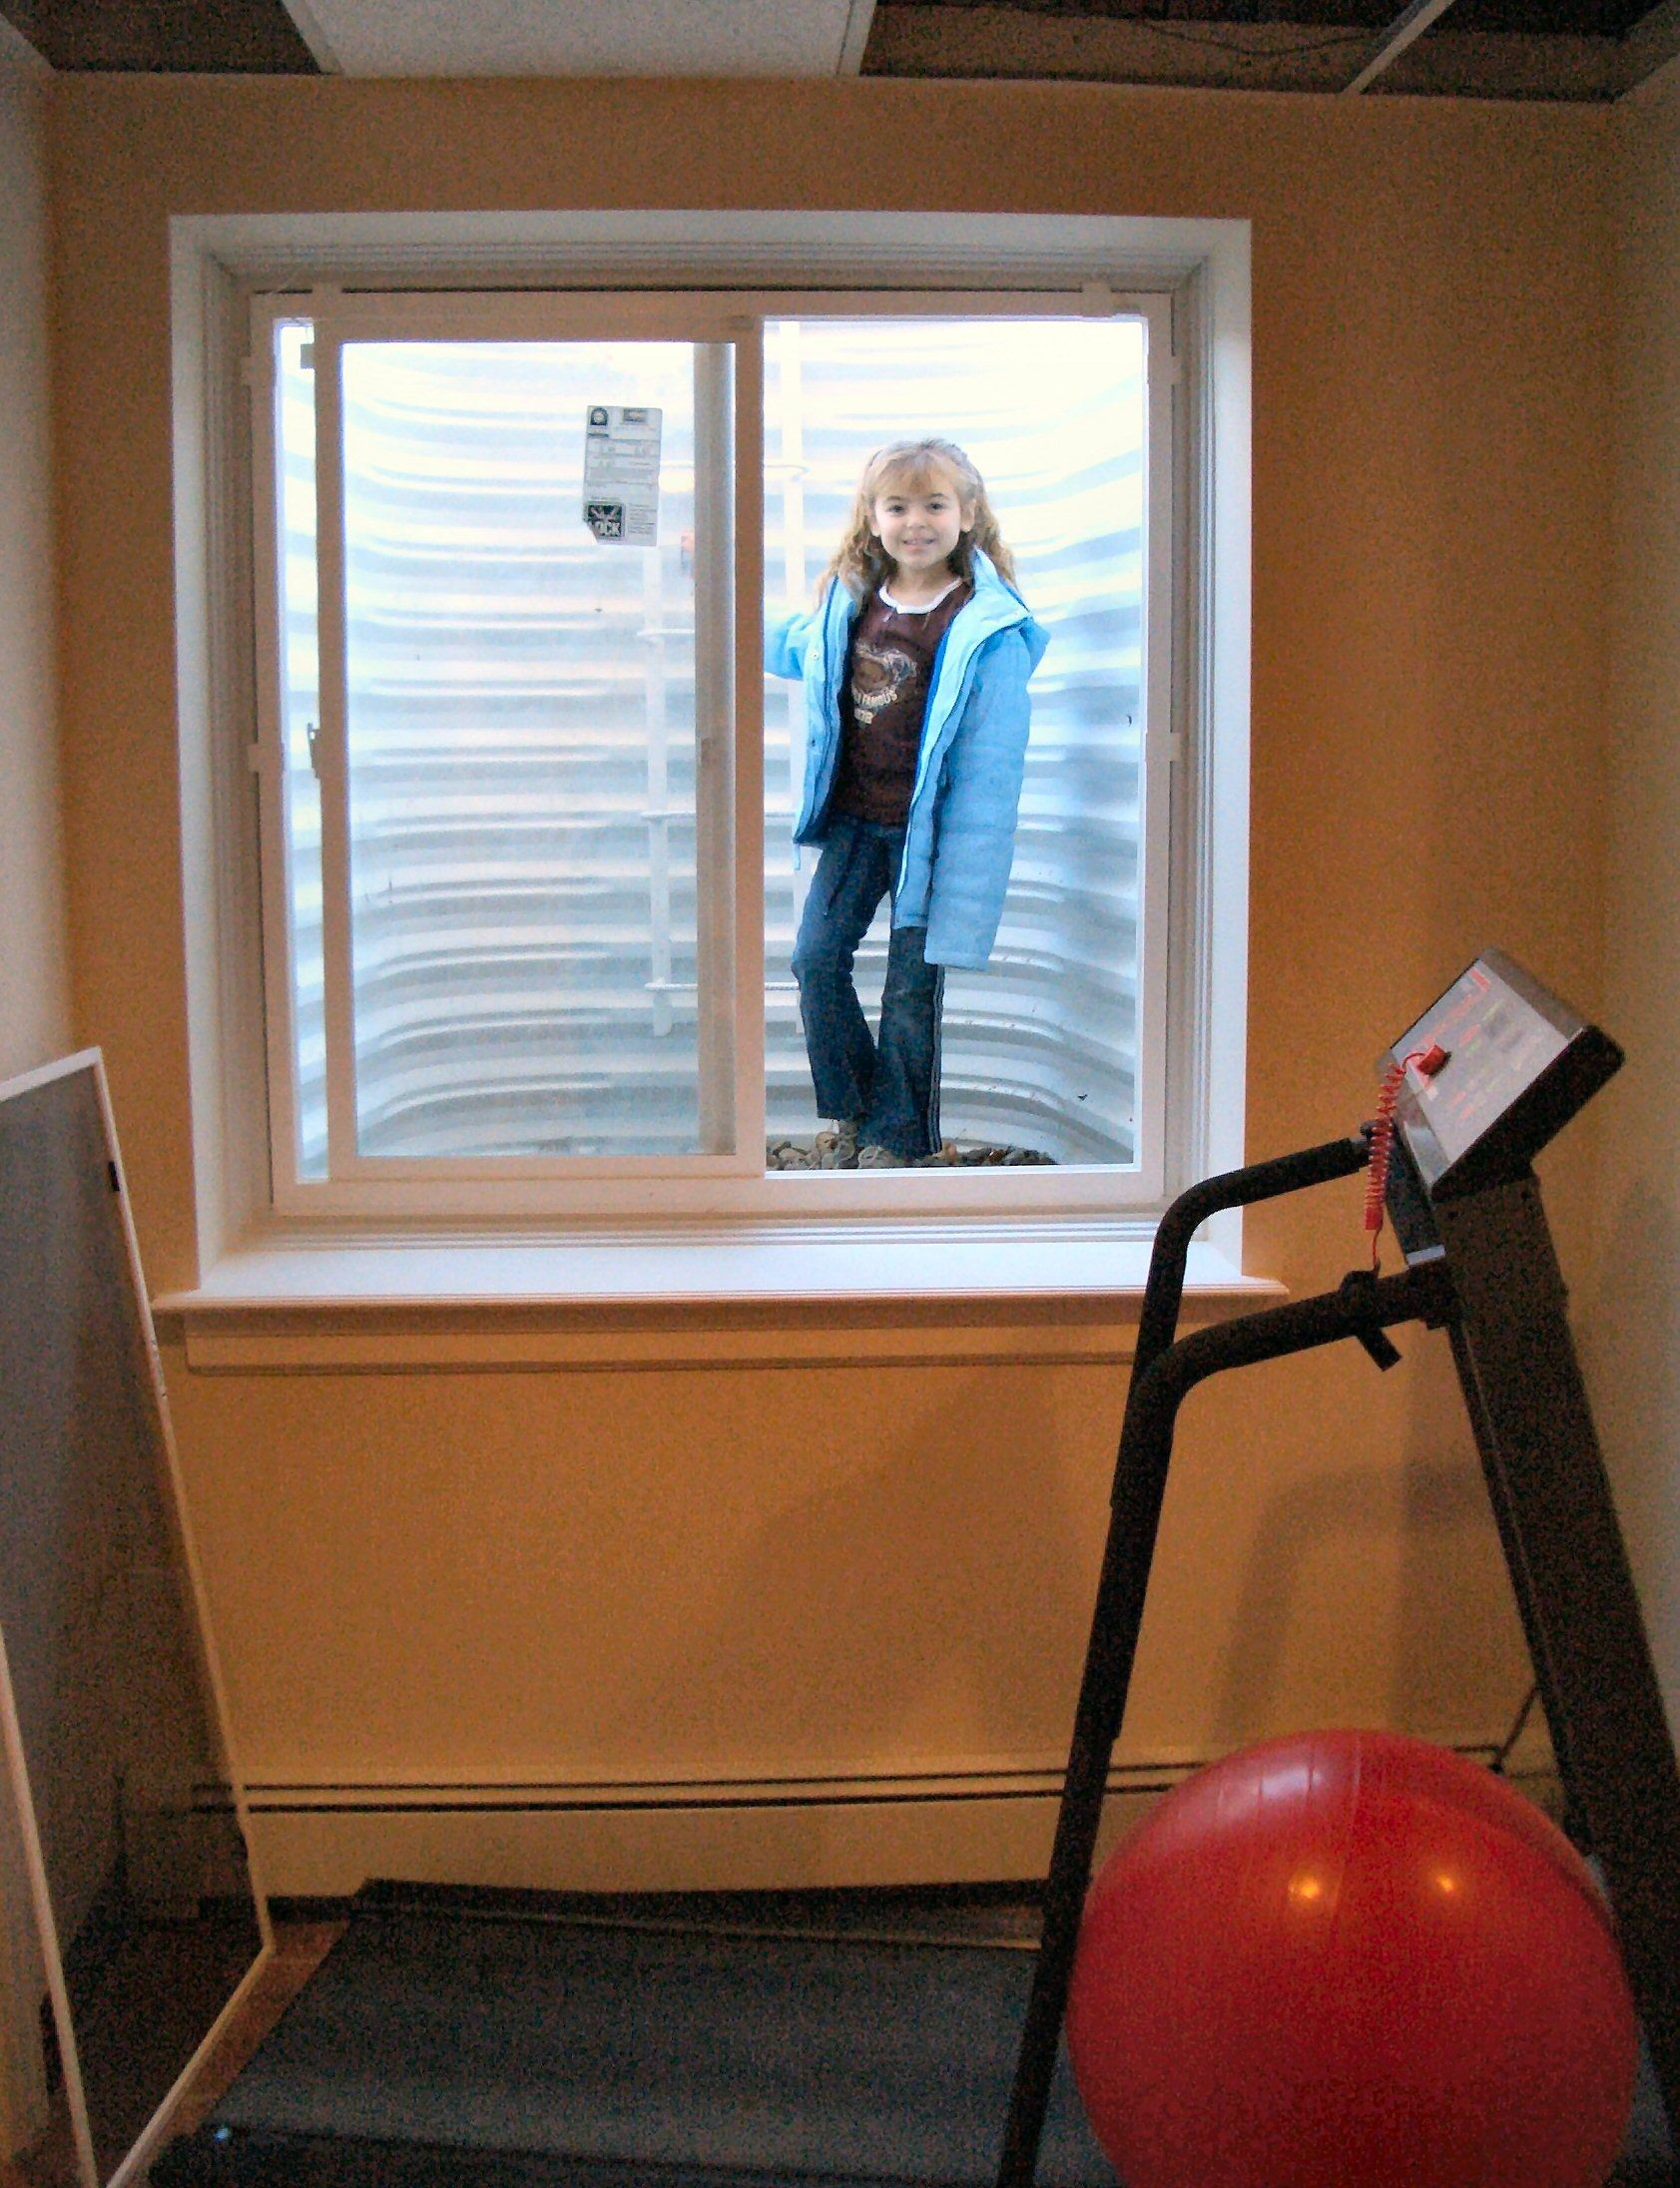 Egress window requirements basement renovation for Egress window requirements for bedroom